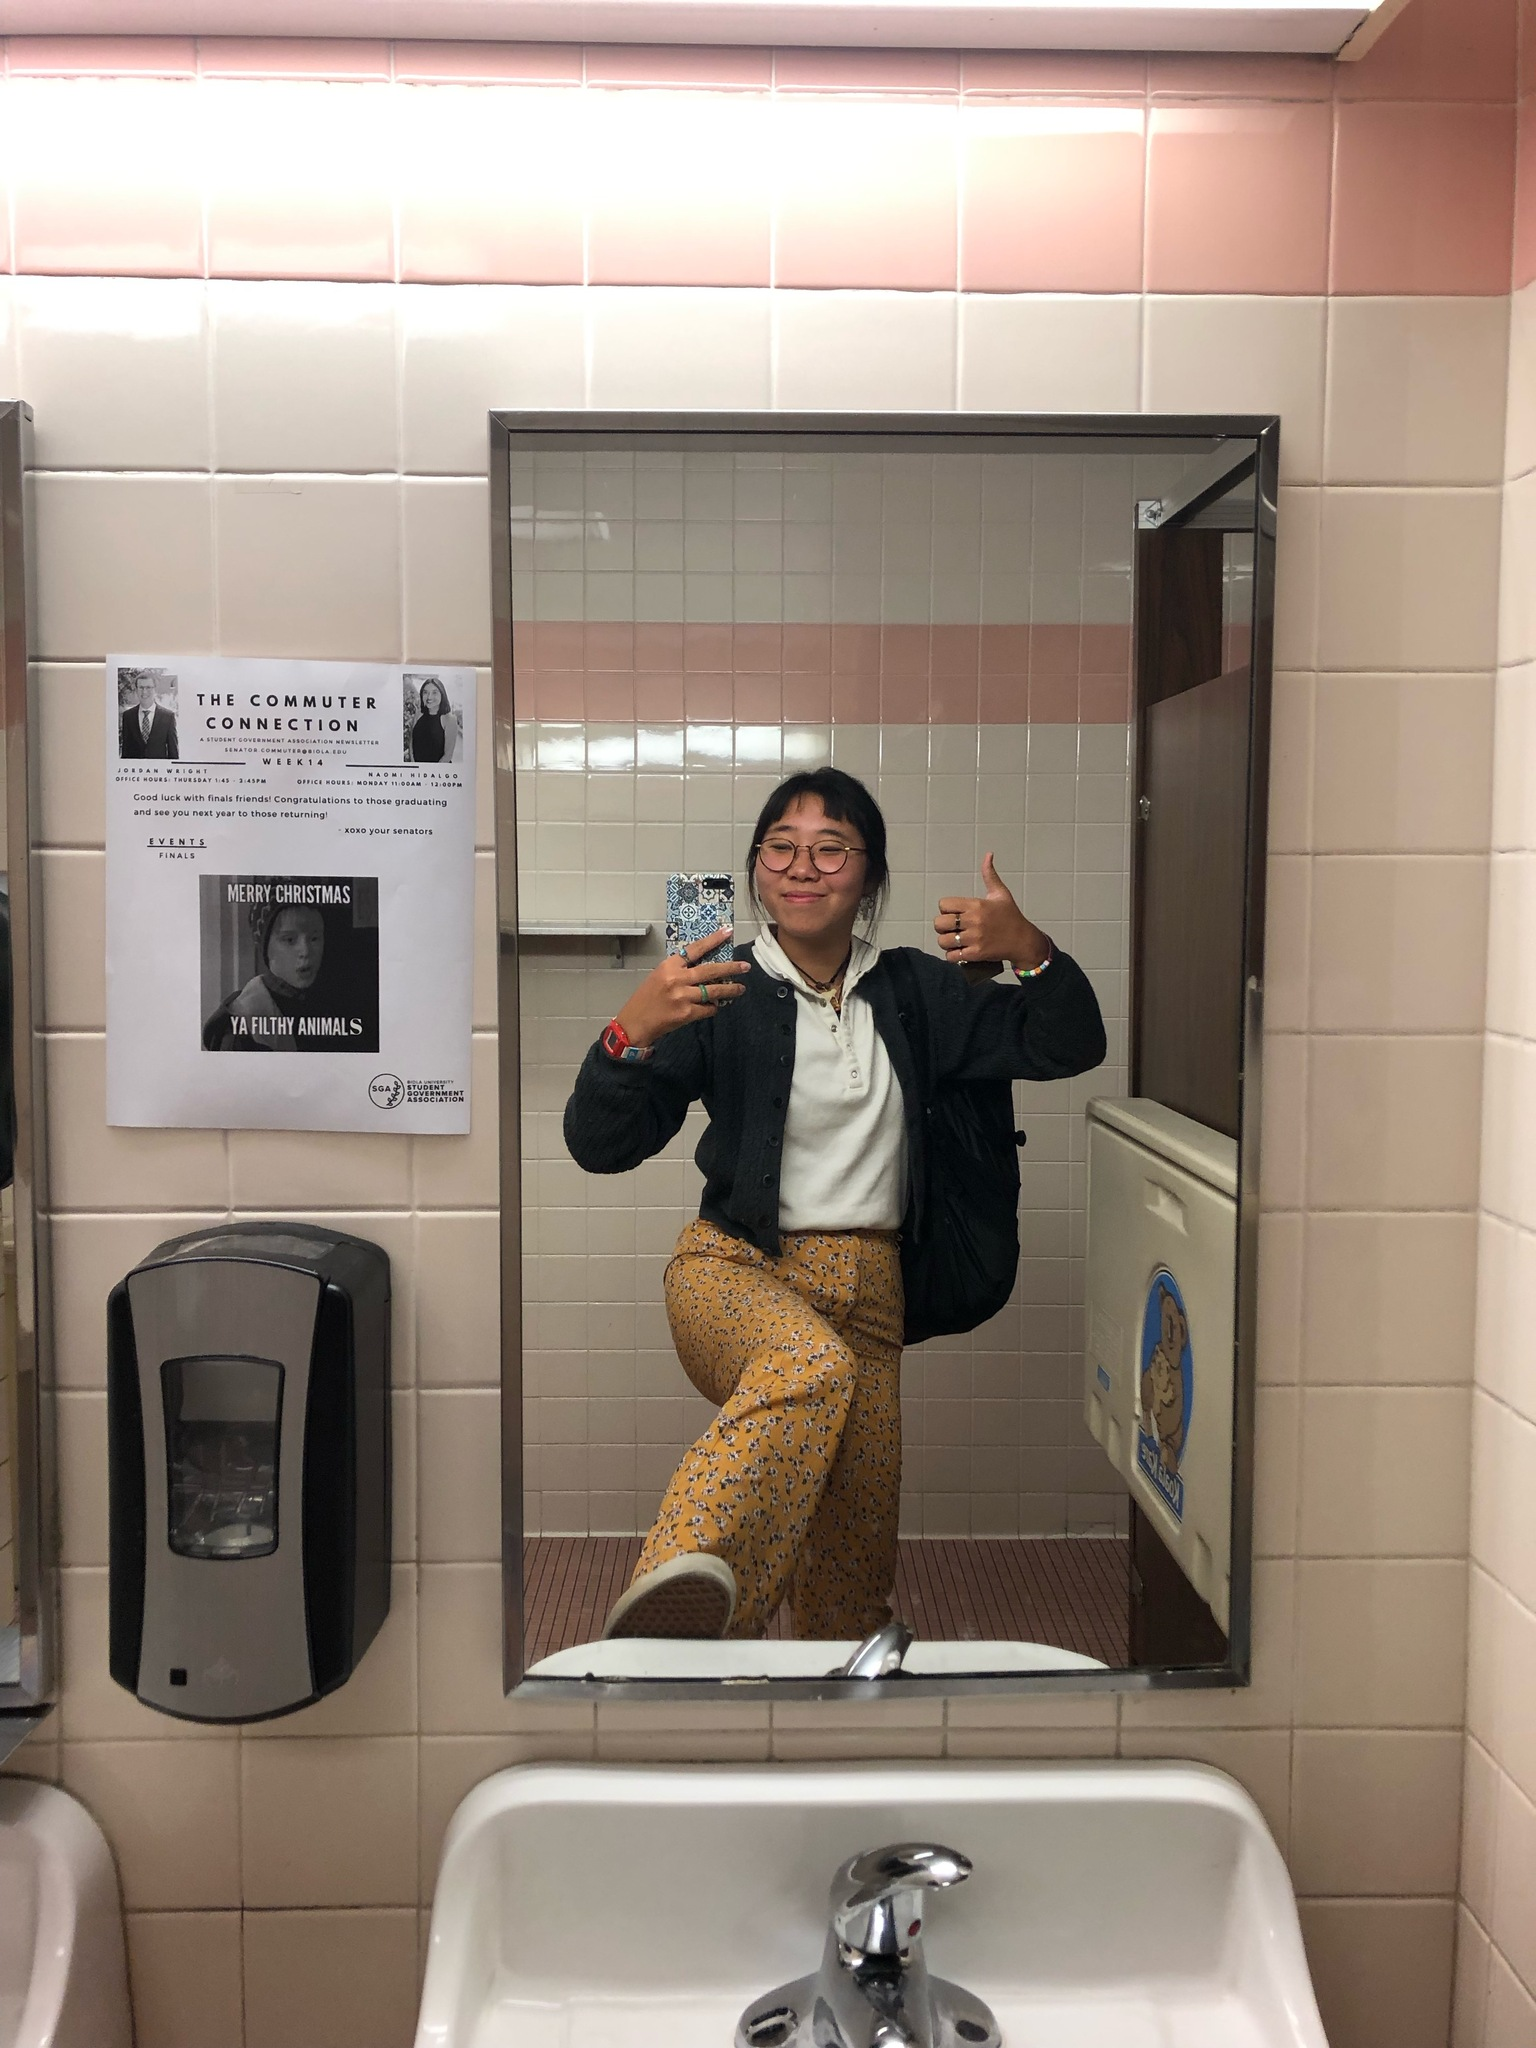 Kristen takes a selfie in one of the campus bathrooms, there's a poster to the side of the mirror detailing a Merry Christmas message for Commuters to campus